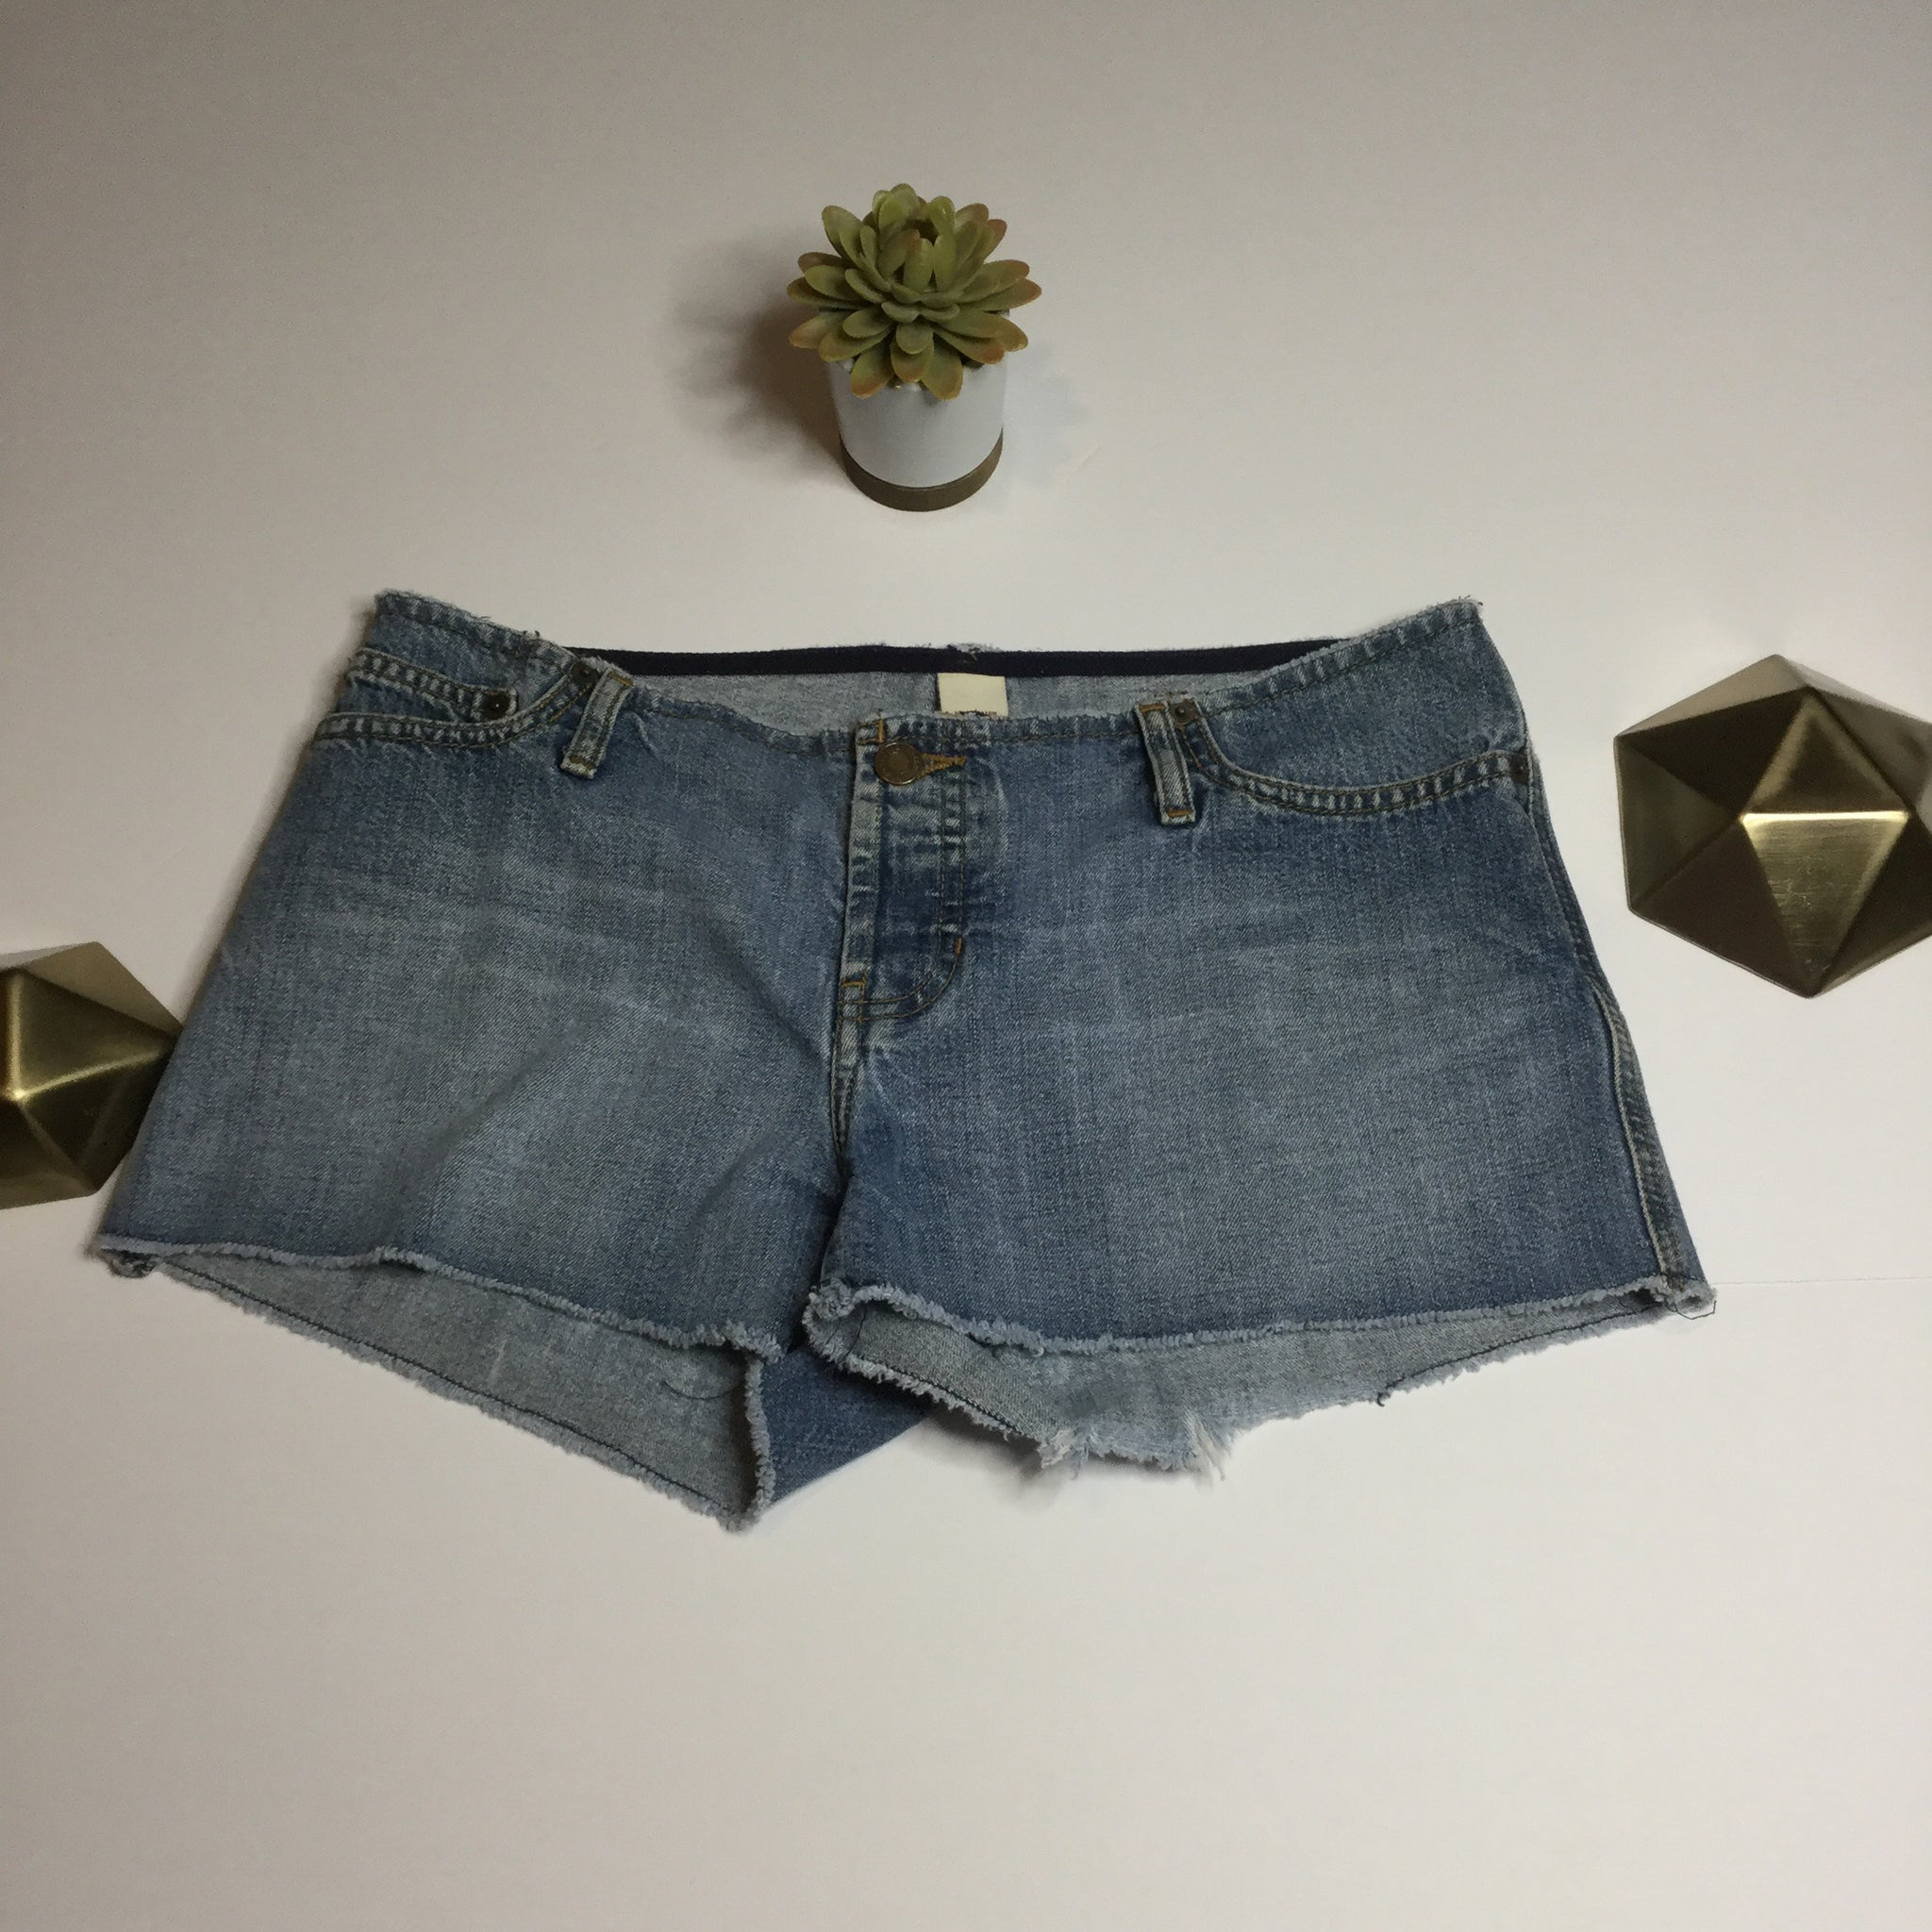 Abercrombie & Fitch raw edge jean shorts